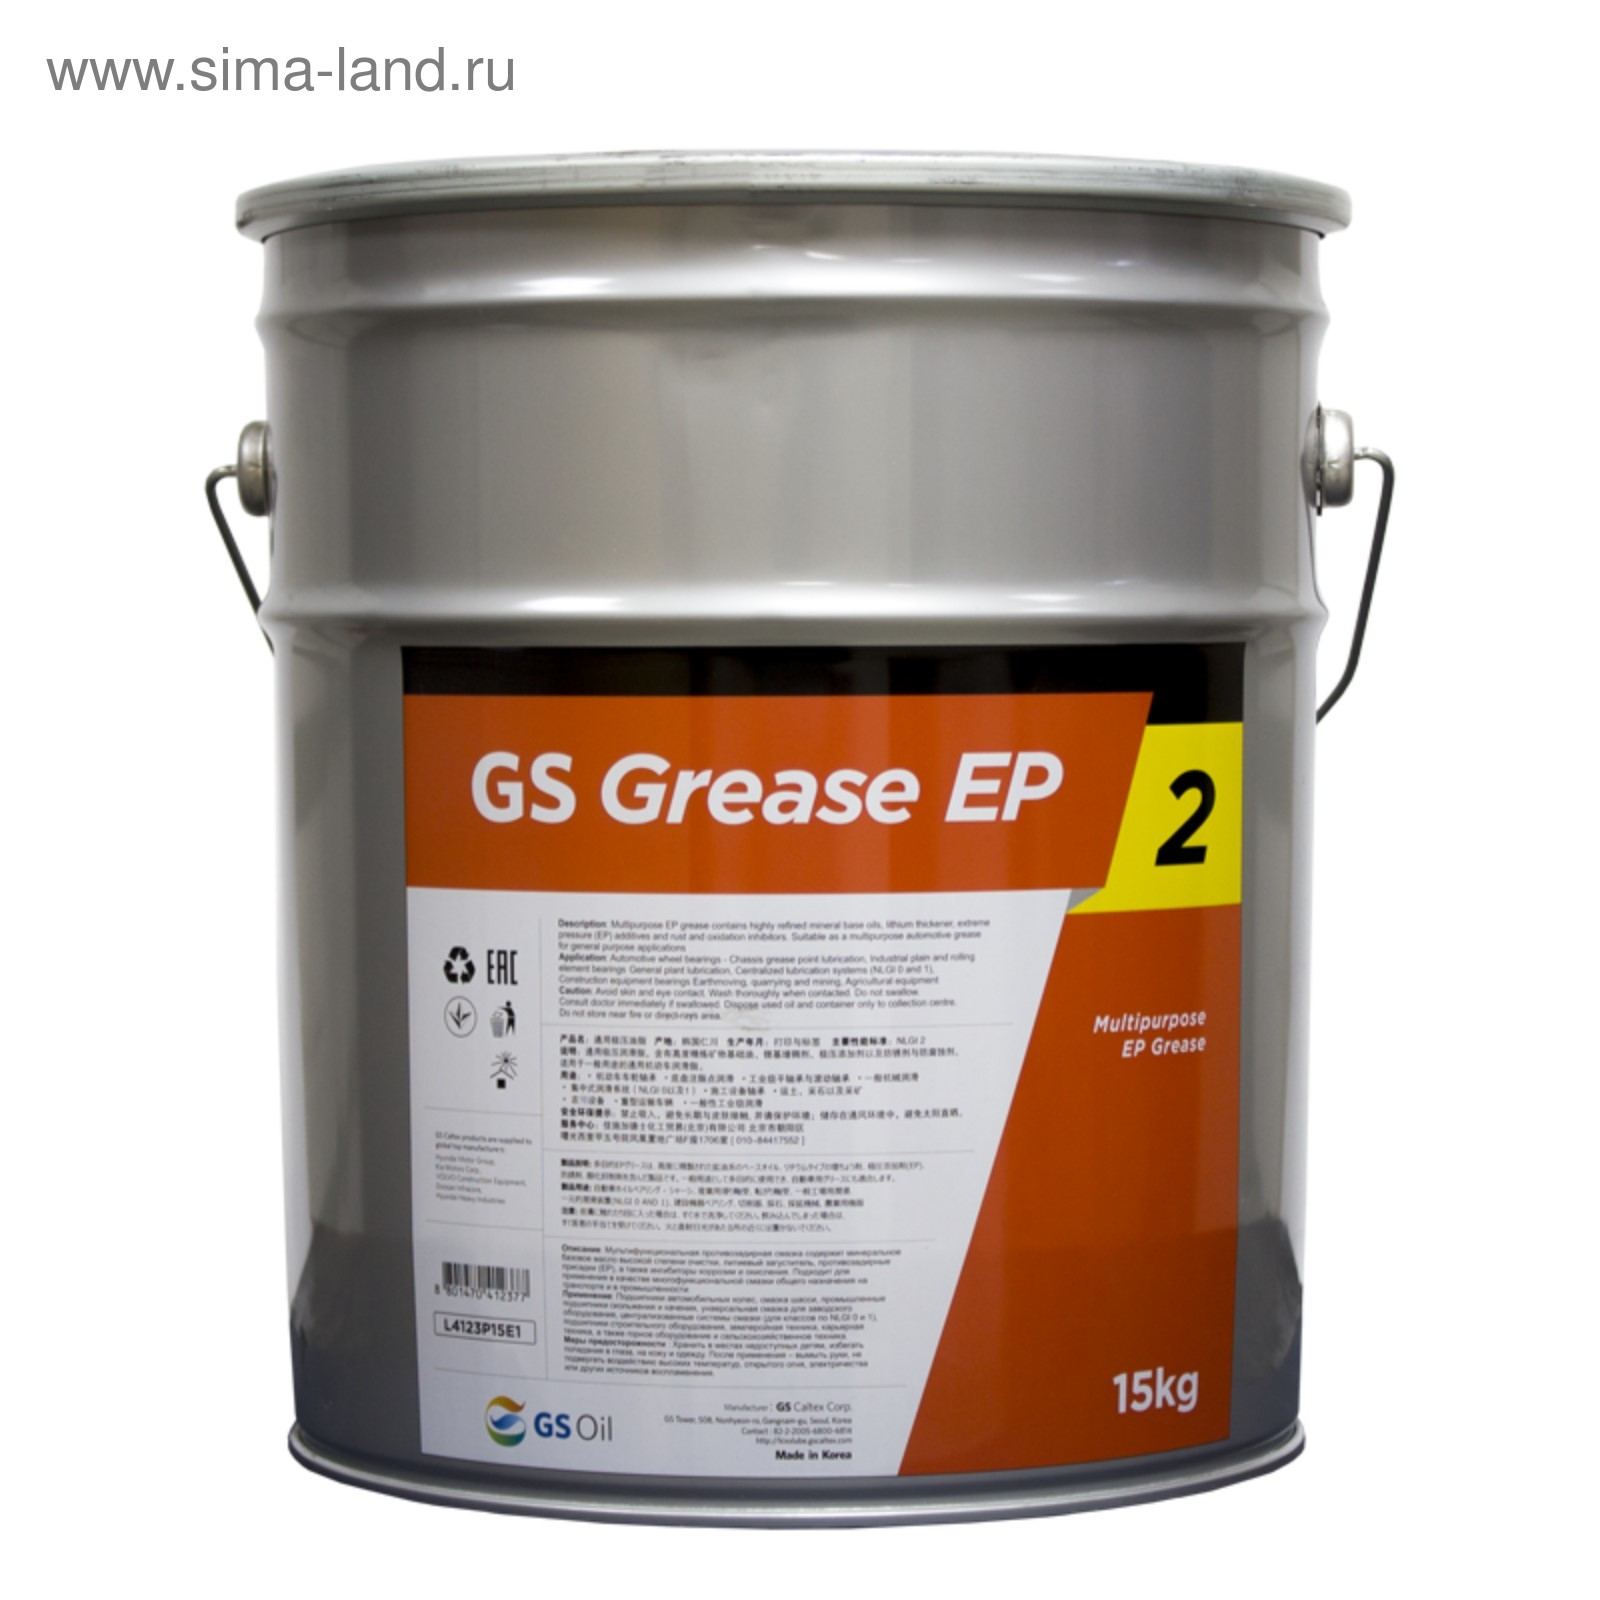 33bafa54c Смазка многоцелевая GS Grease EP 2 Golden Pearl, 15 кг (3937722 ...